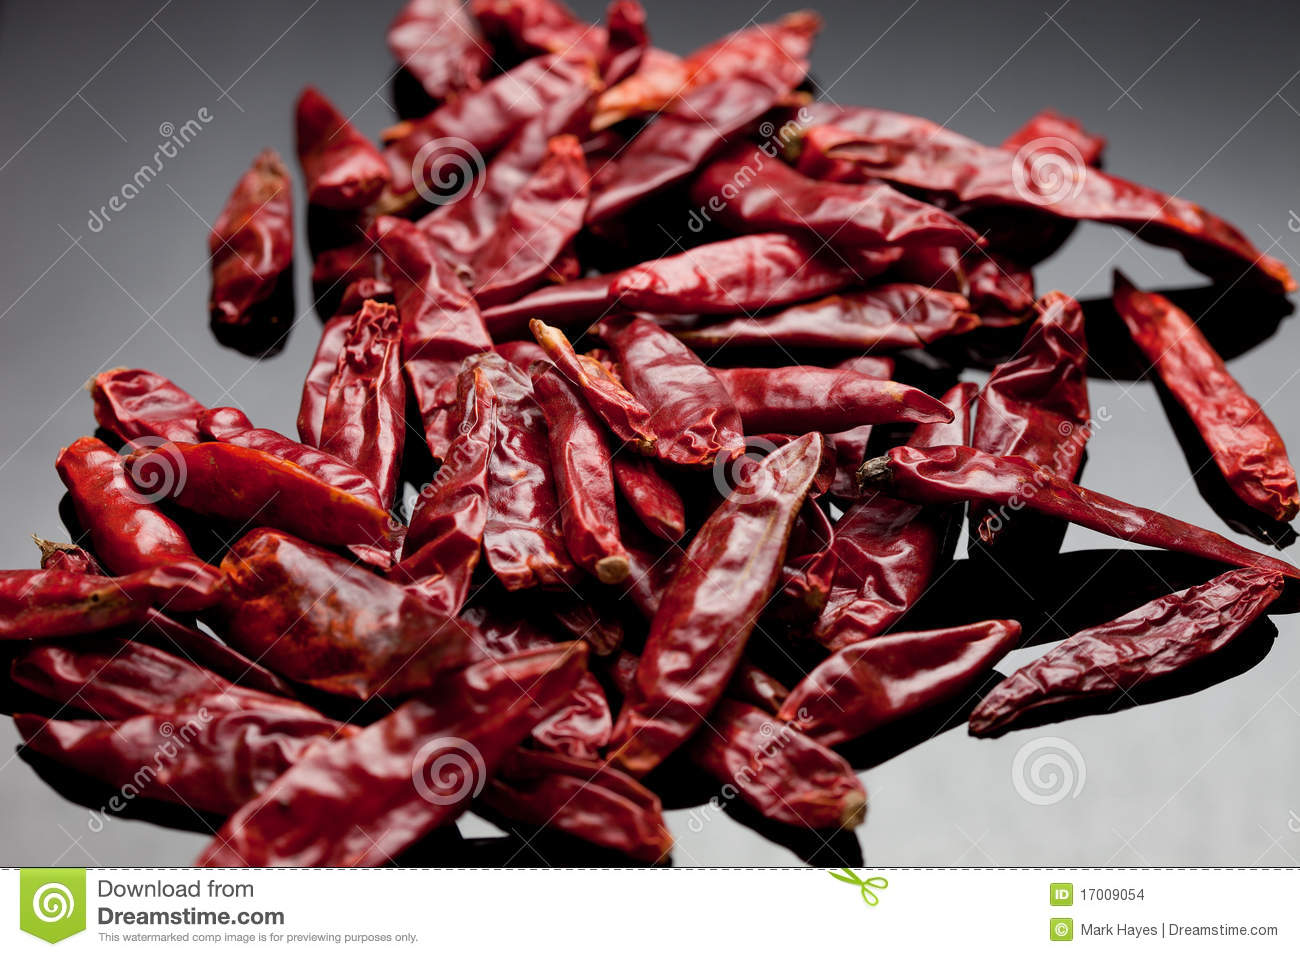 dried red chili peppers stock photo image of food detail. Black Bedroom Furniture Sets. Home Design Ideas